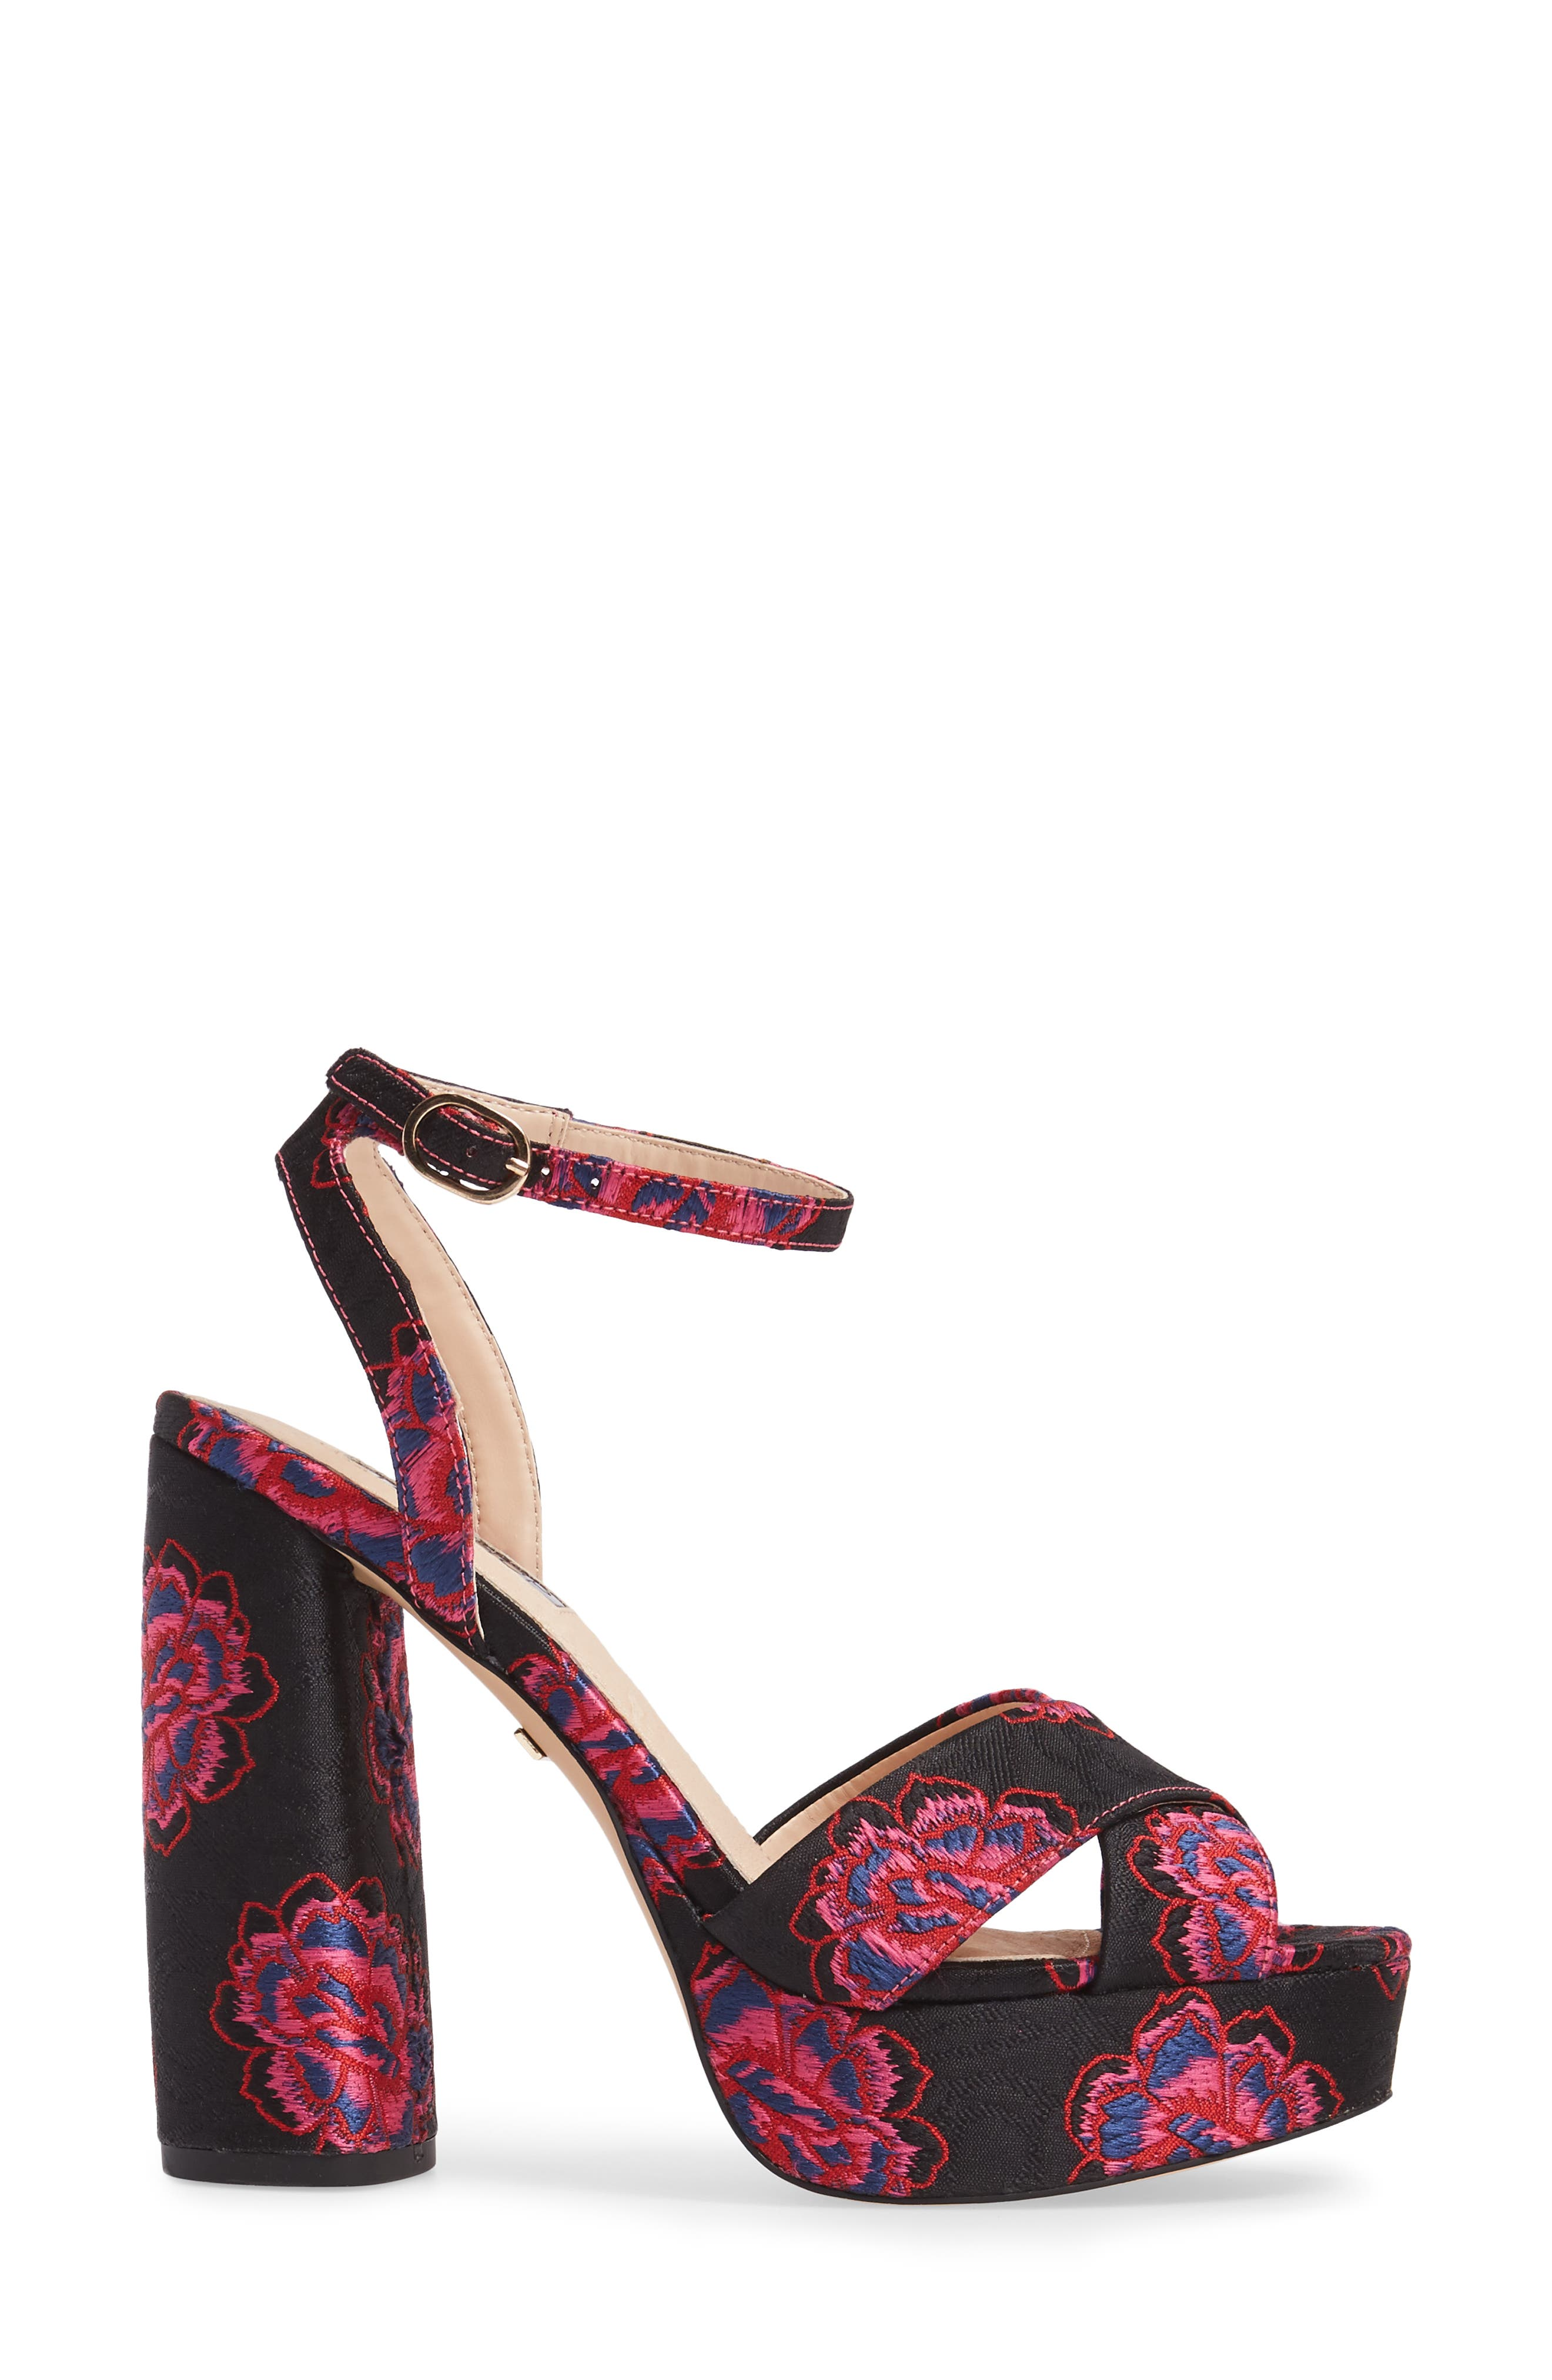 Lollie Embroidered Sandals,                             Alternate thumbnail 3, color,                             001